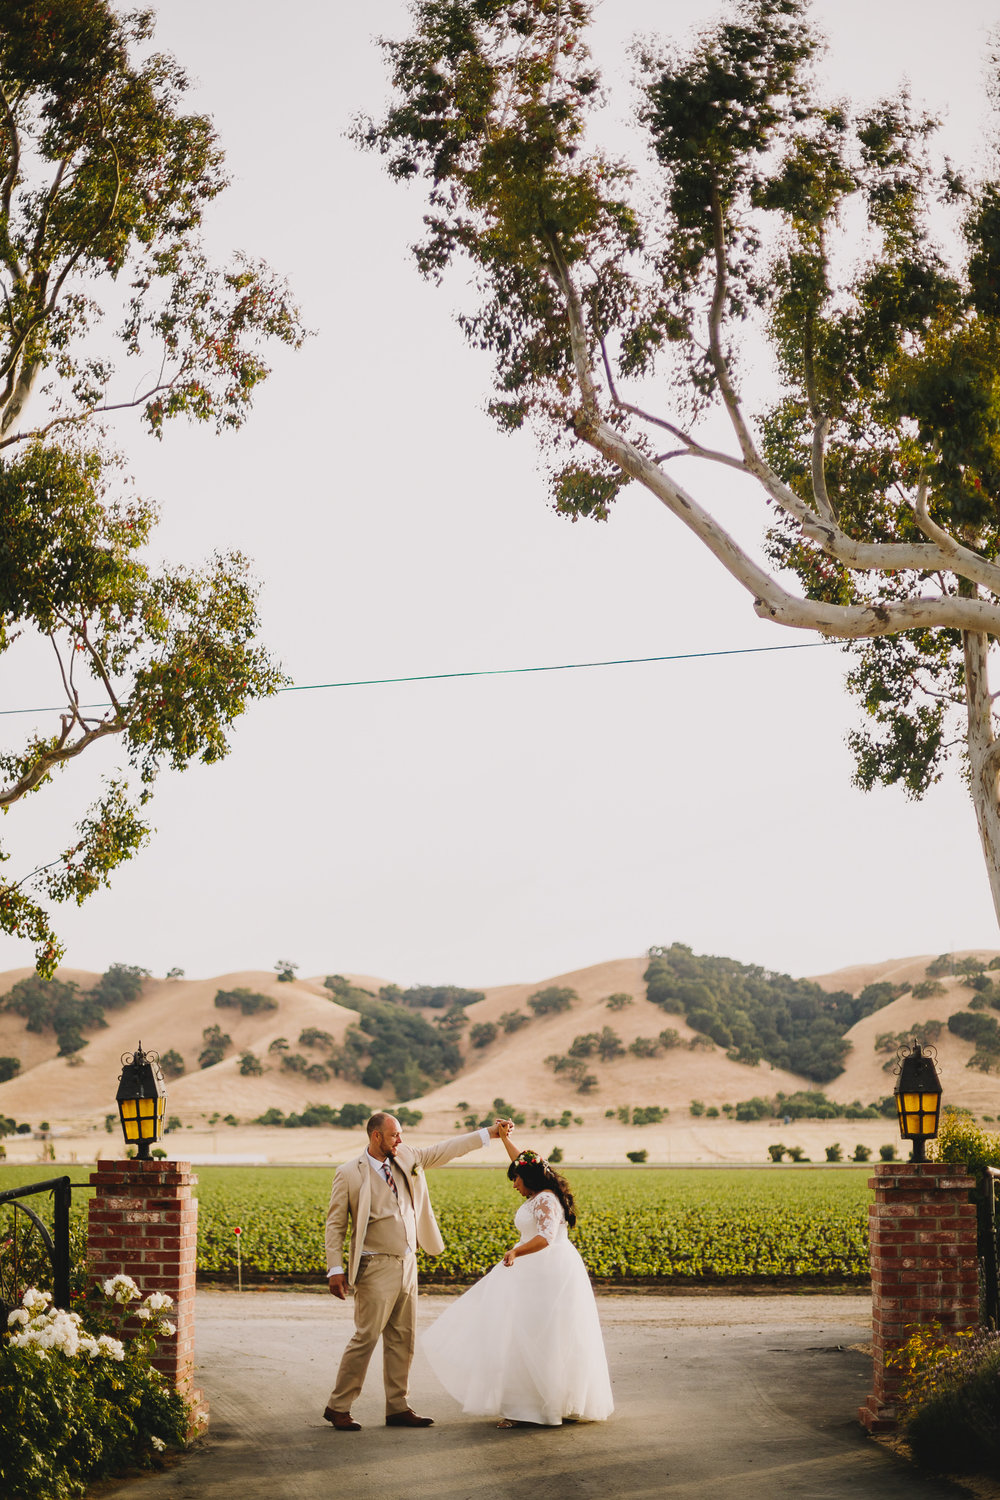 Archer Inspired Photography Fitz Place San Martin Wedding Lifestyle Documentary Affordable Photographer South Bay-560.jpg